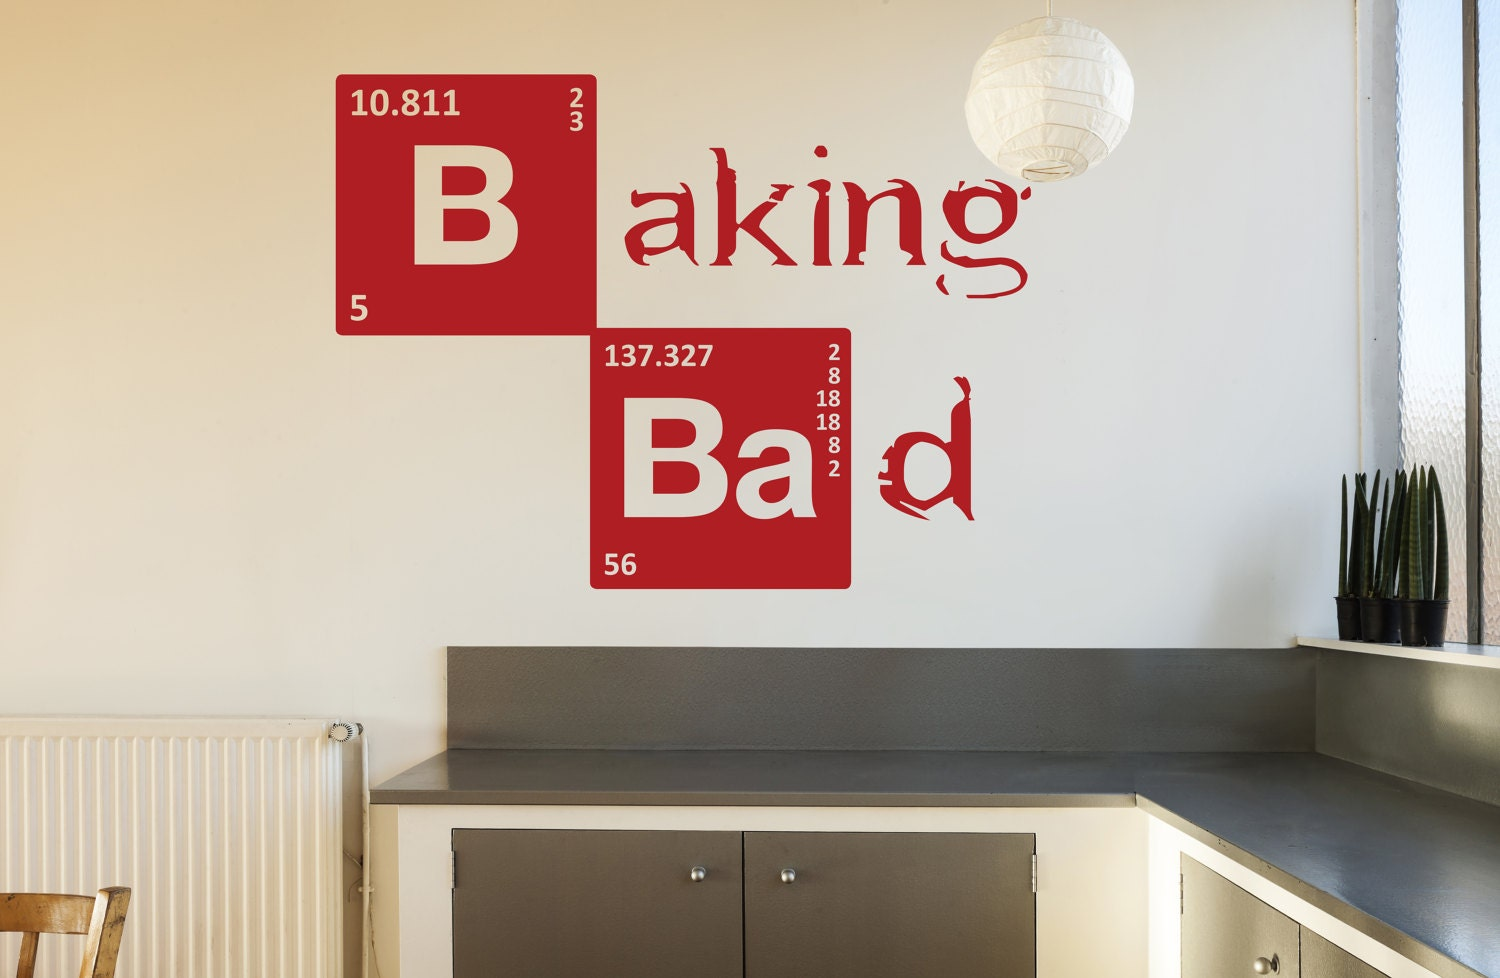 Breaking bad baking bad wall sticker kitchen vinyl decal zoom amipublicfo Choice Image